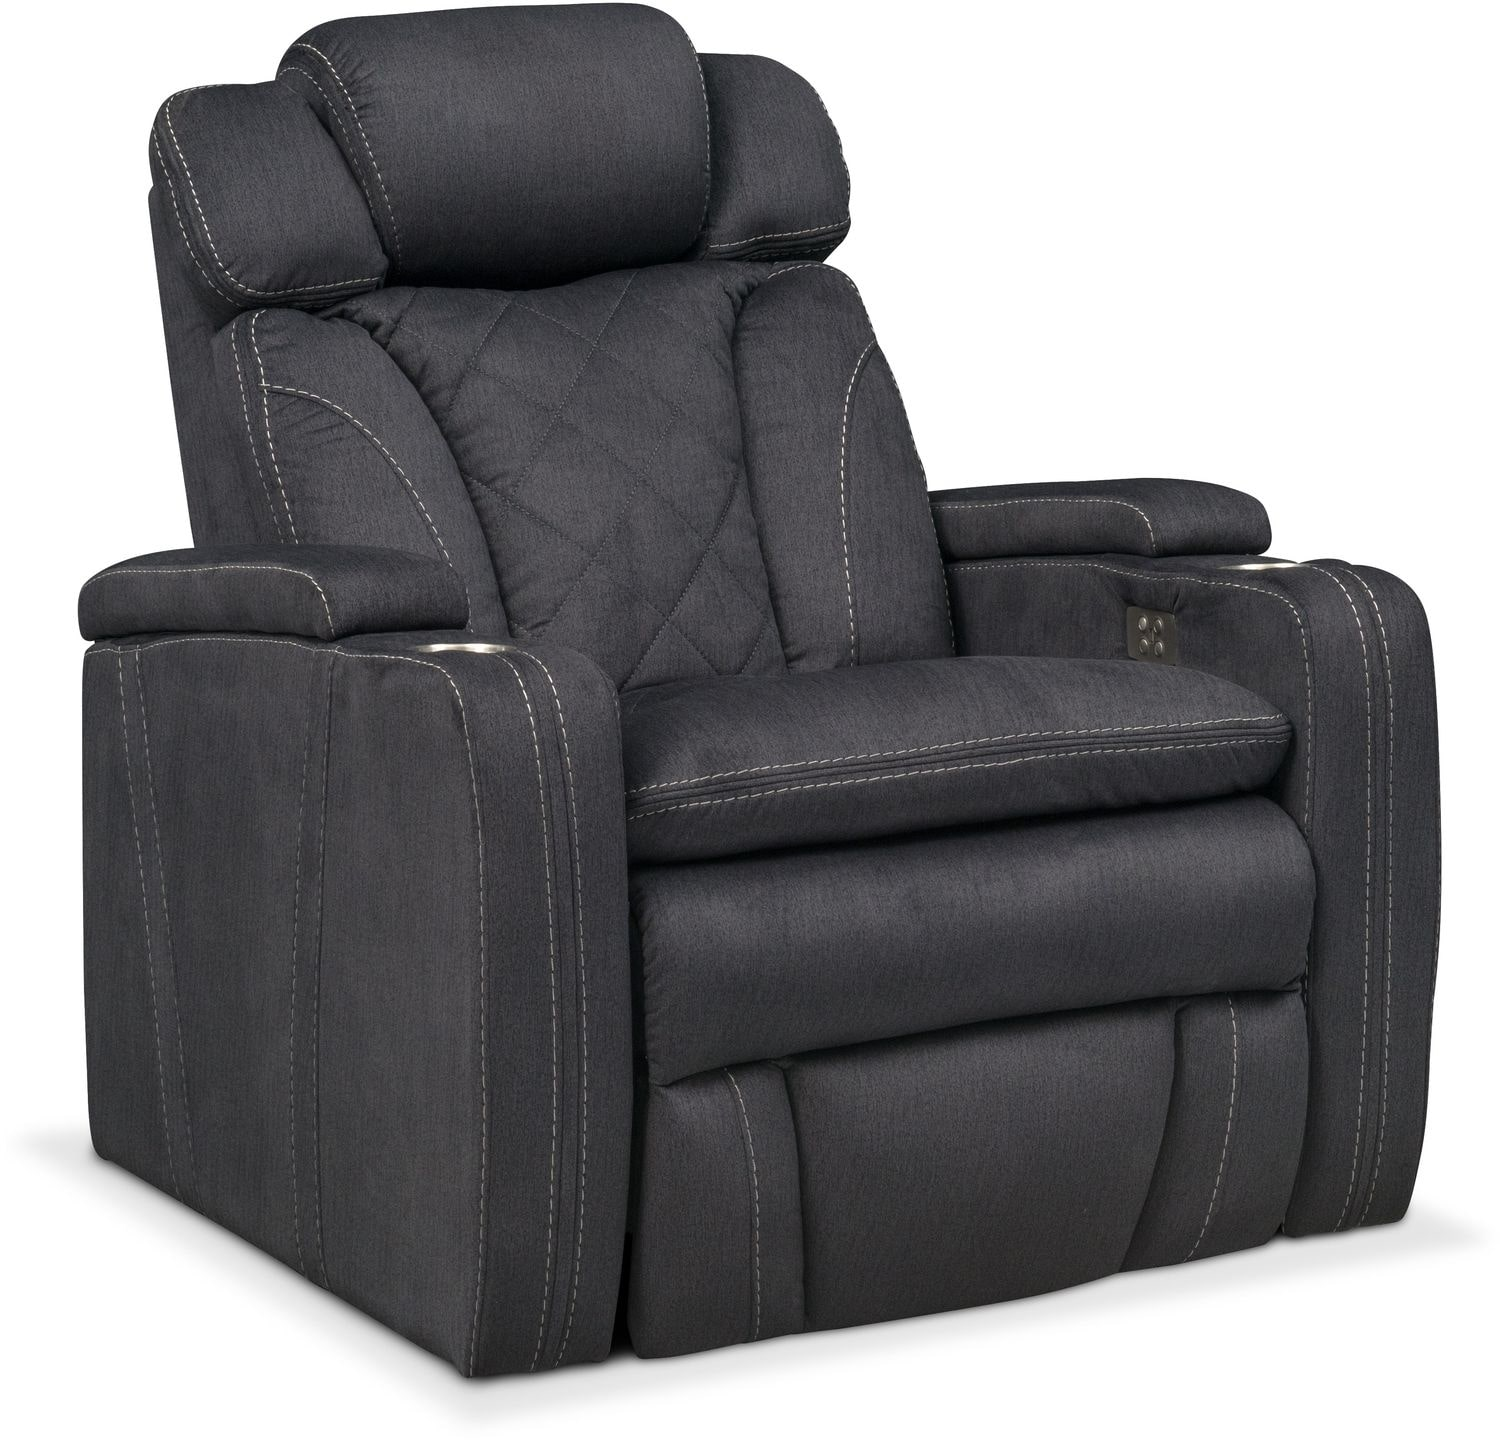 Fiero Power Recliner - Charcoal  sc 1 st  Value City Furniture & Recliners u0026 Rockers | Value City Furniture | Value City Furniture islam-shia.org